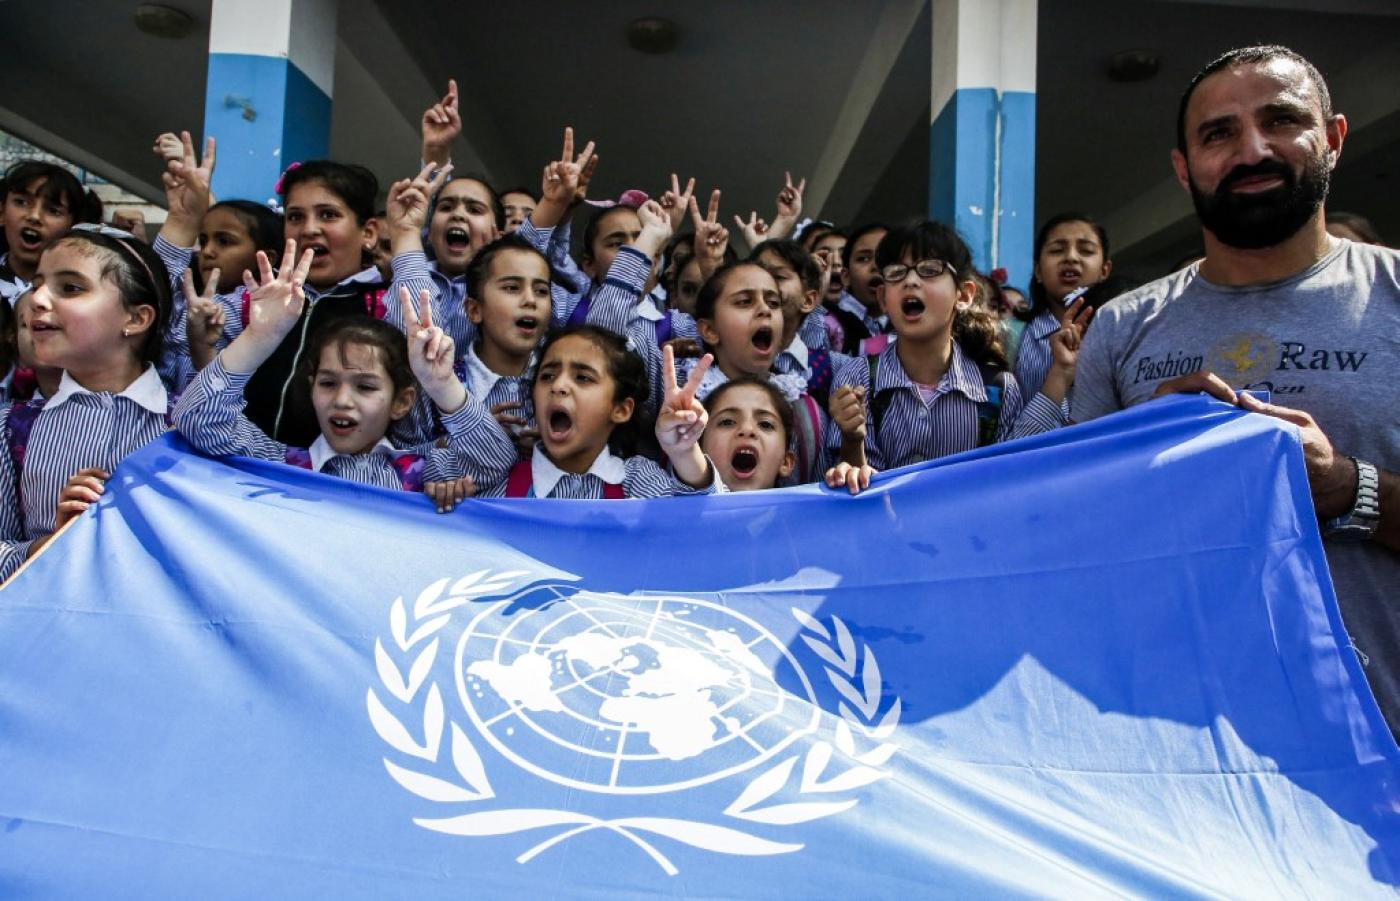 UNRWA provides basic services to Palestinian refugees, including health care and education